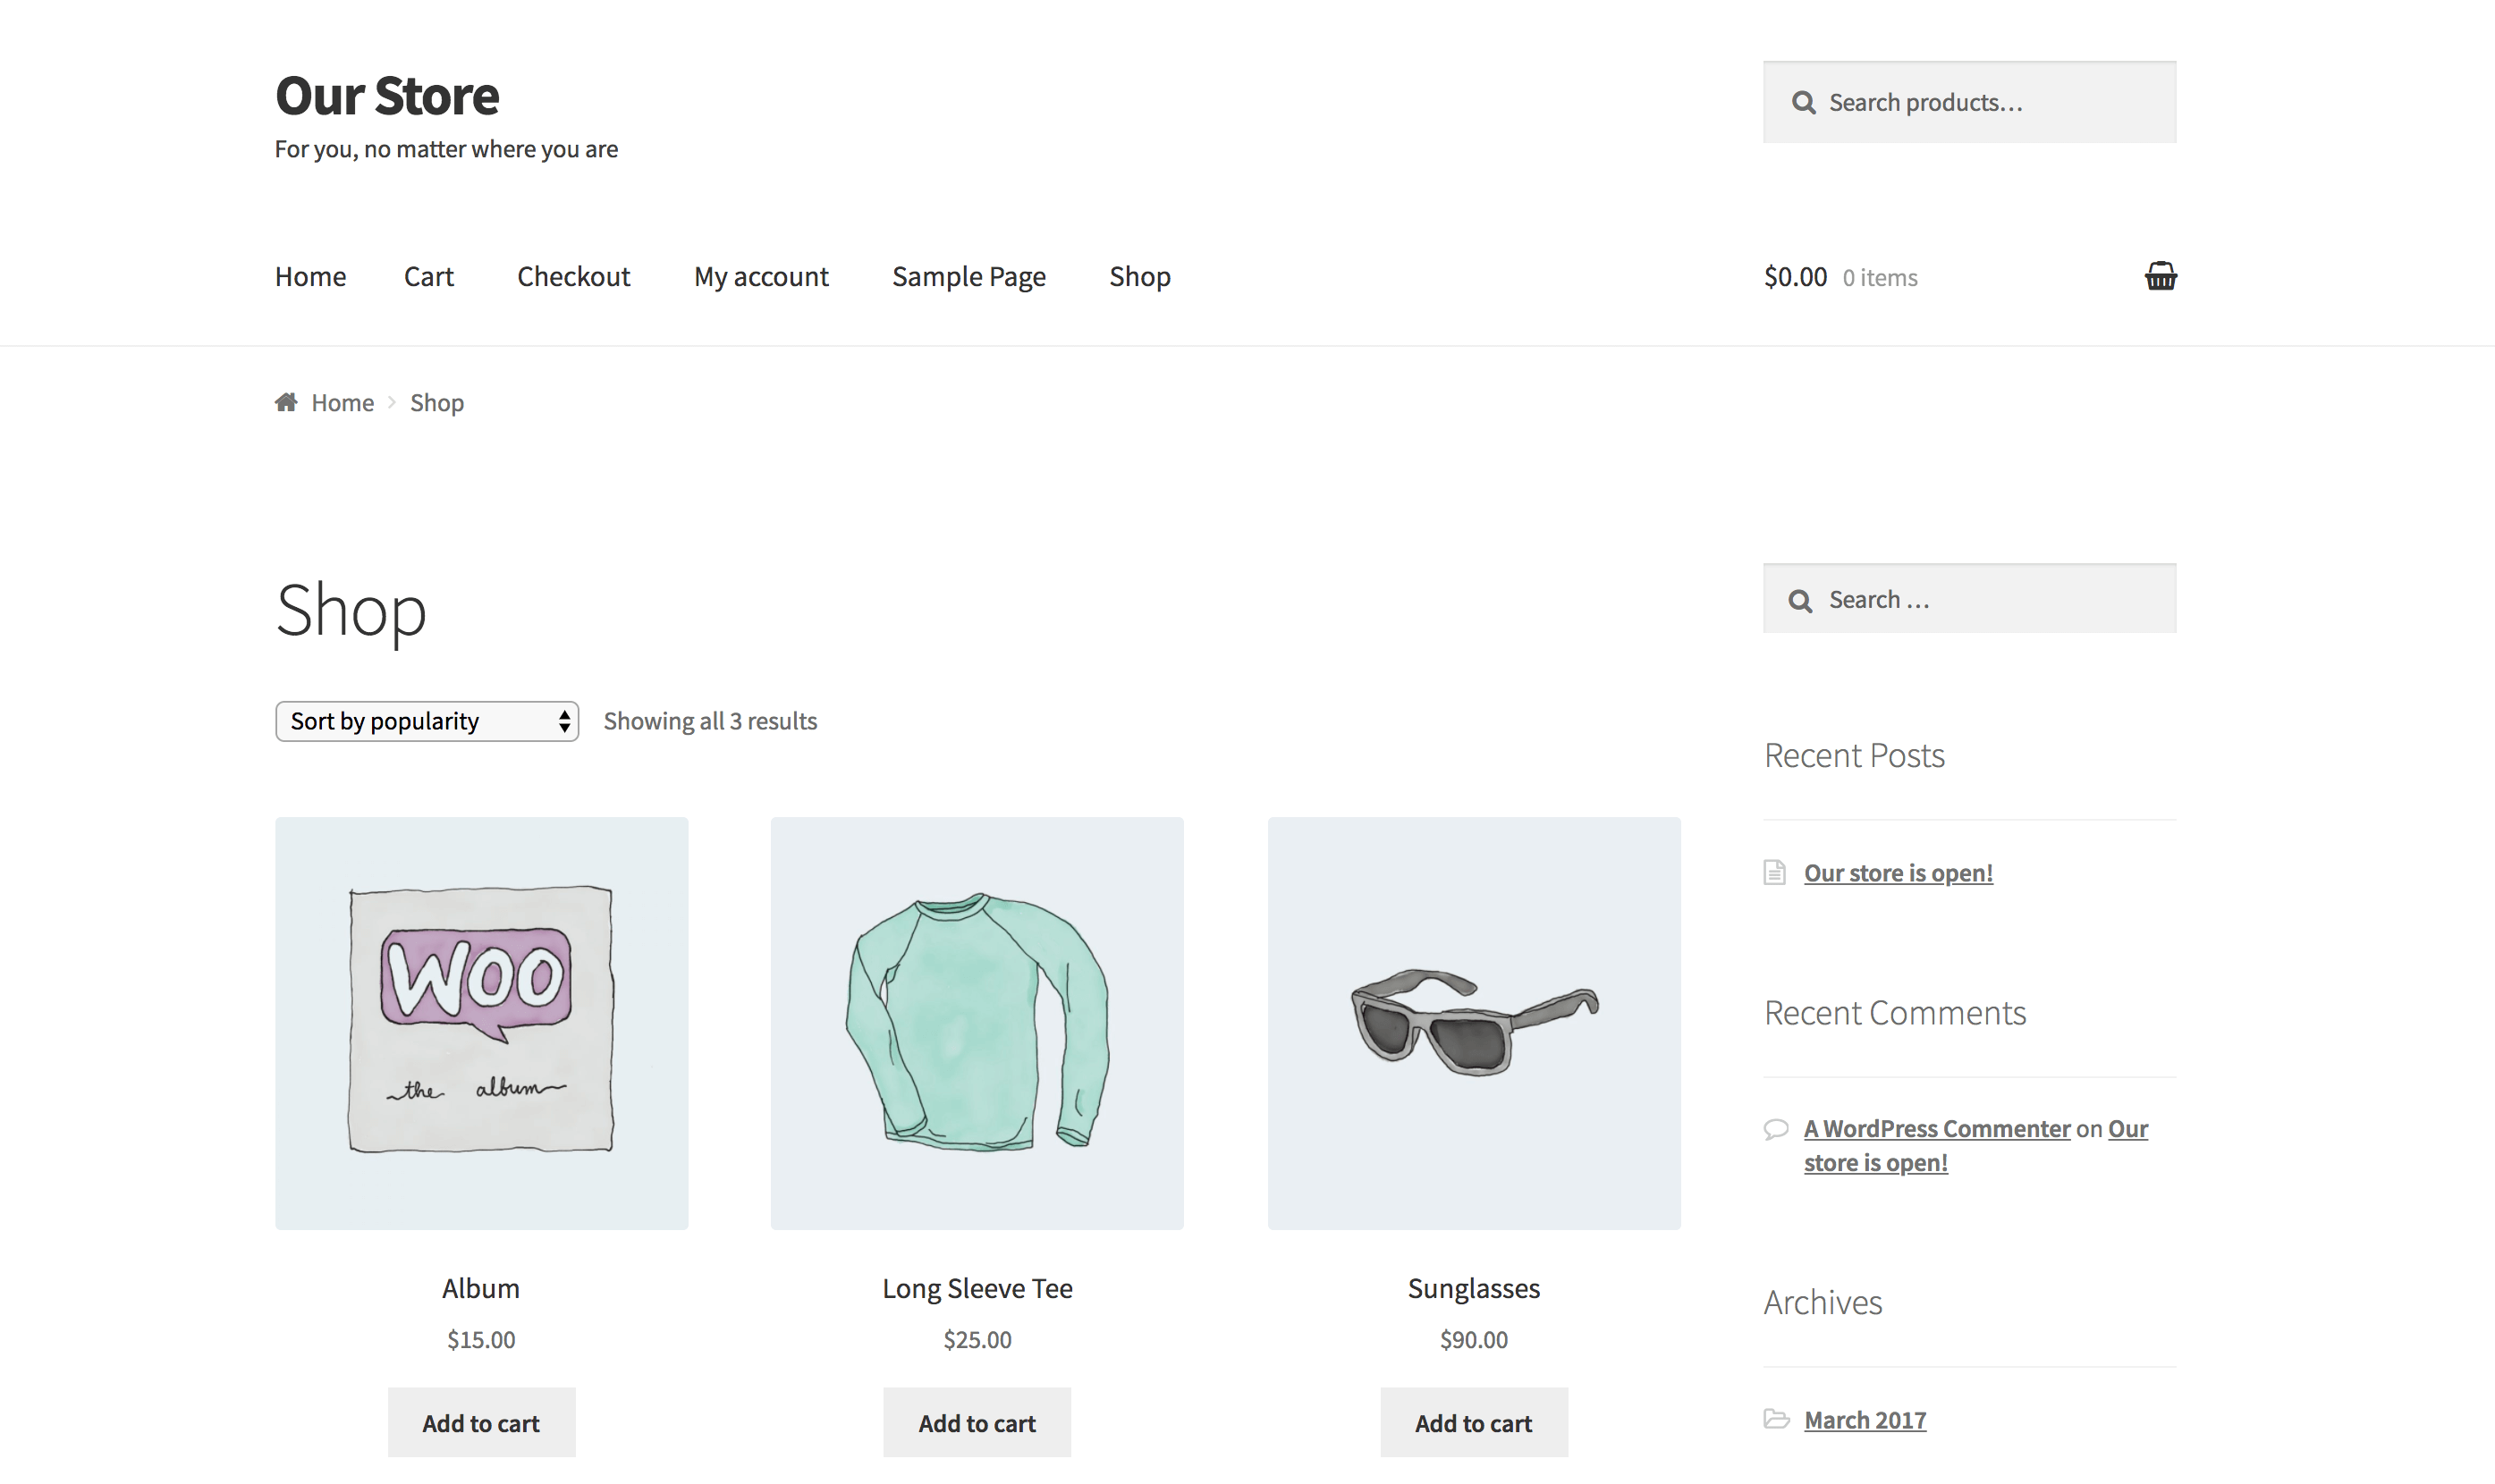 A WordPress site running WooCommerce and featuring sample products.